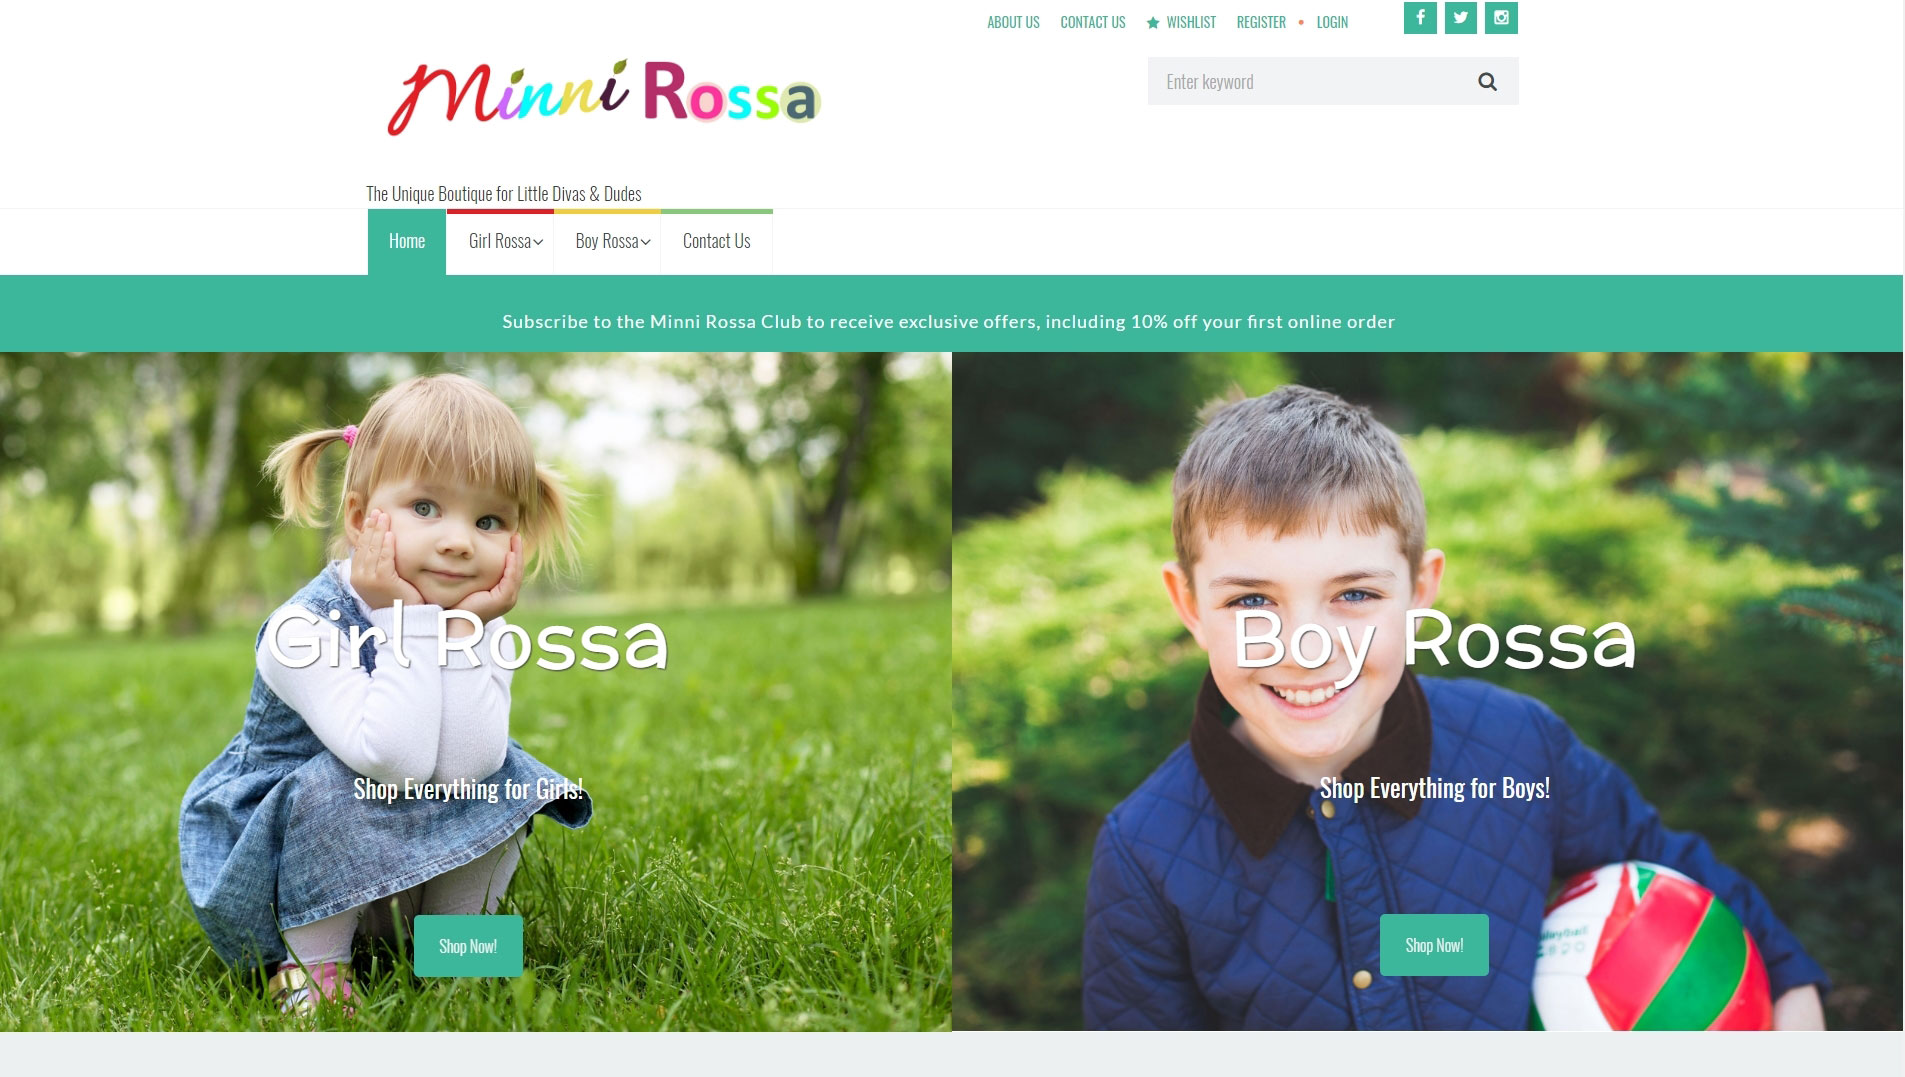 MinniRossa.com Website Image